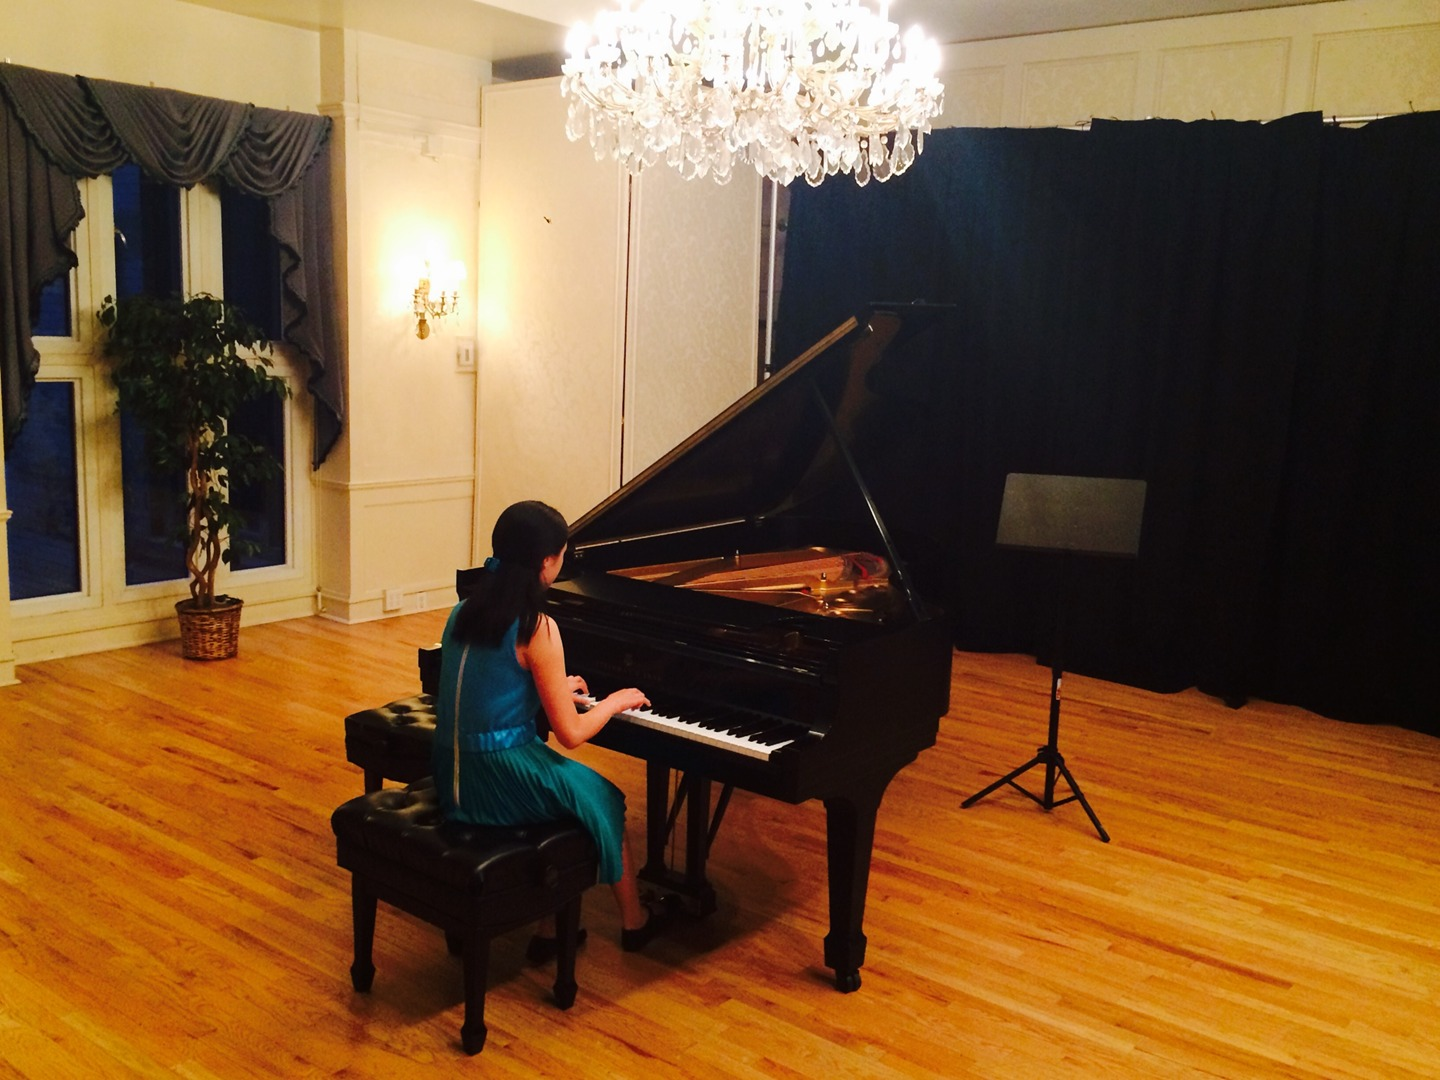 The New York Conservatory of Music